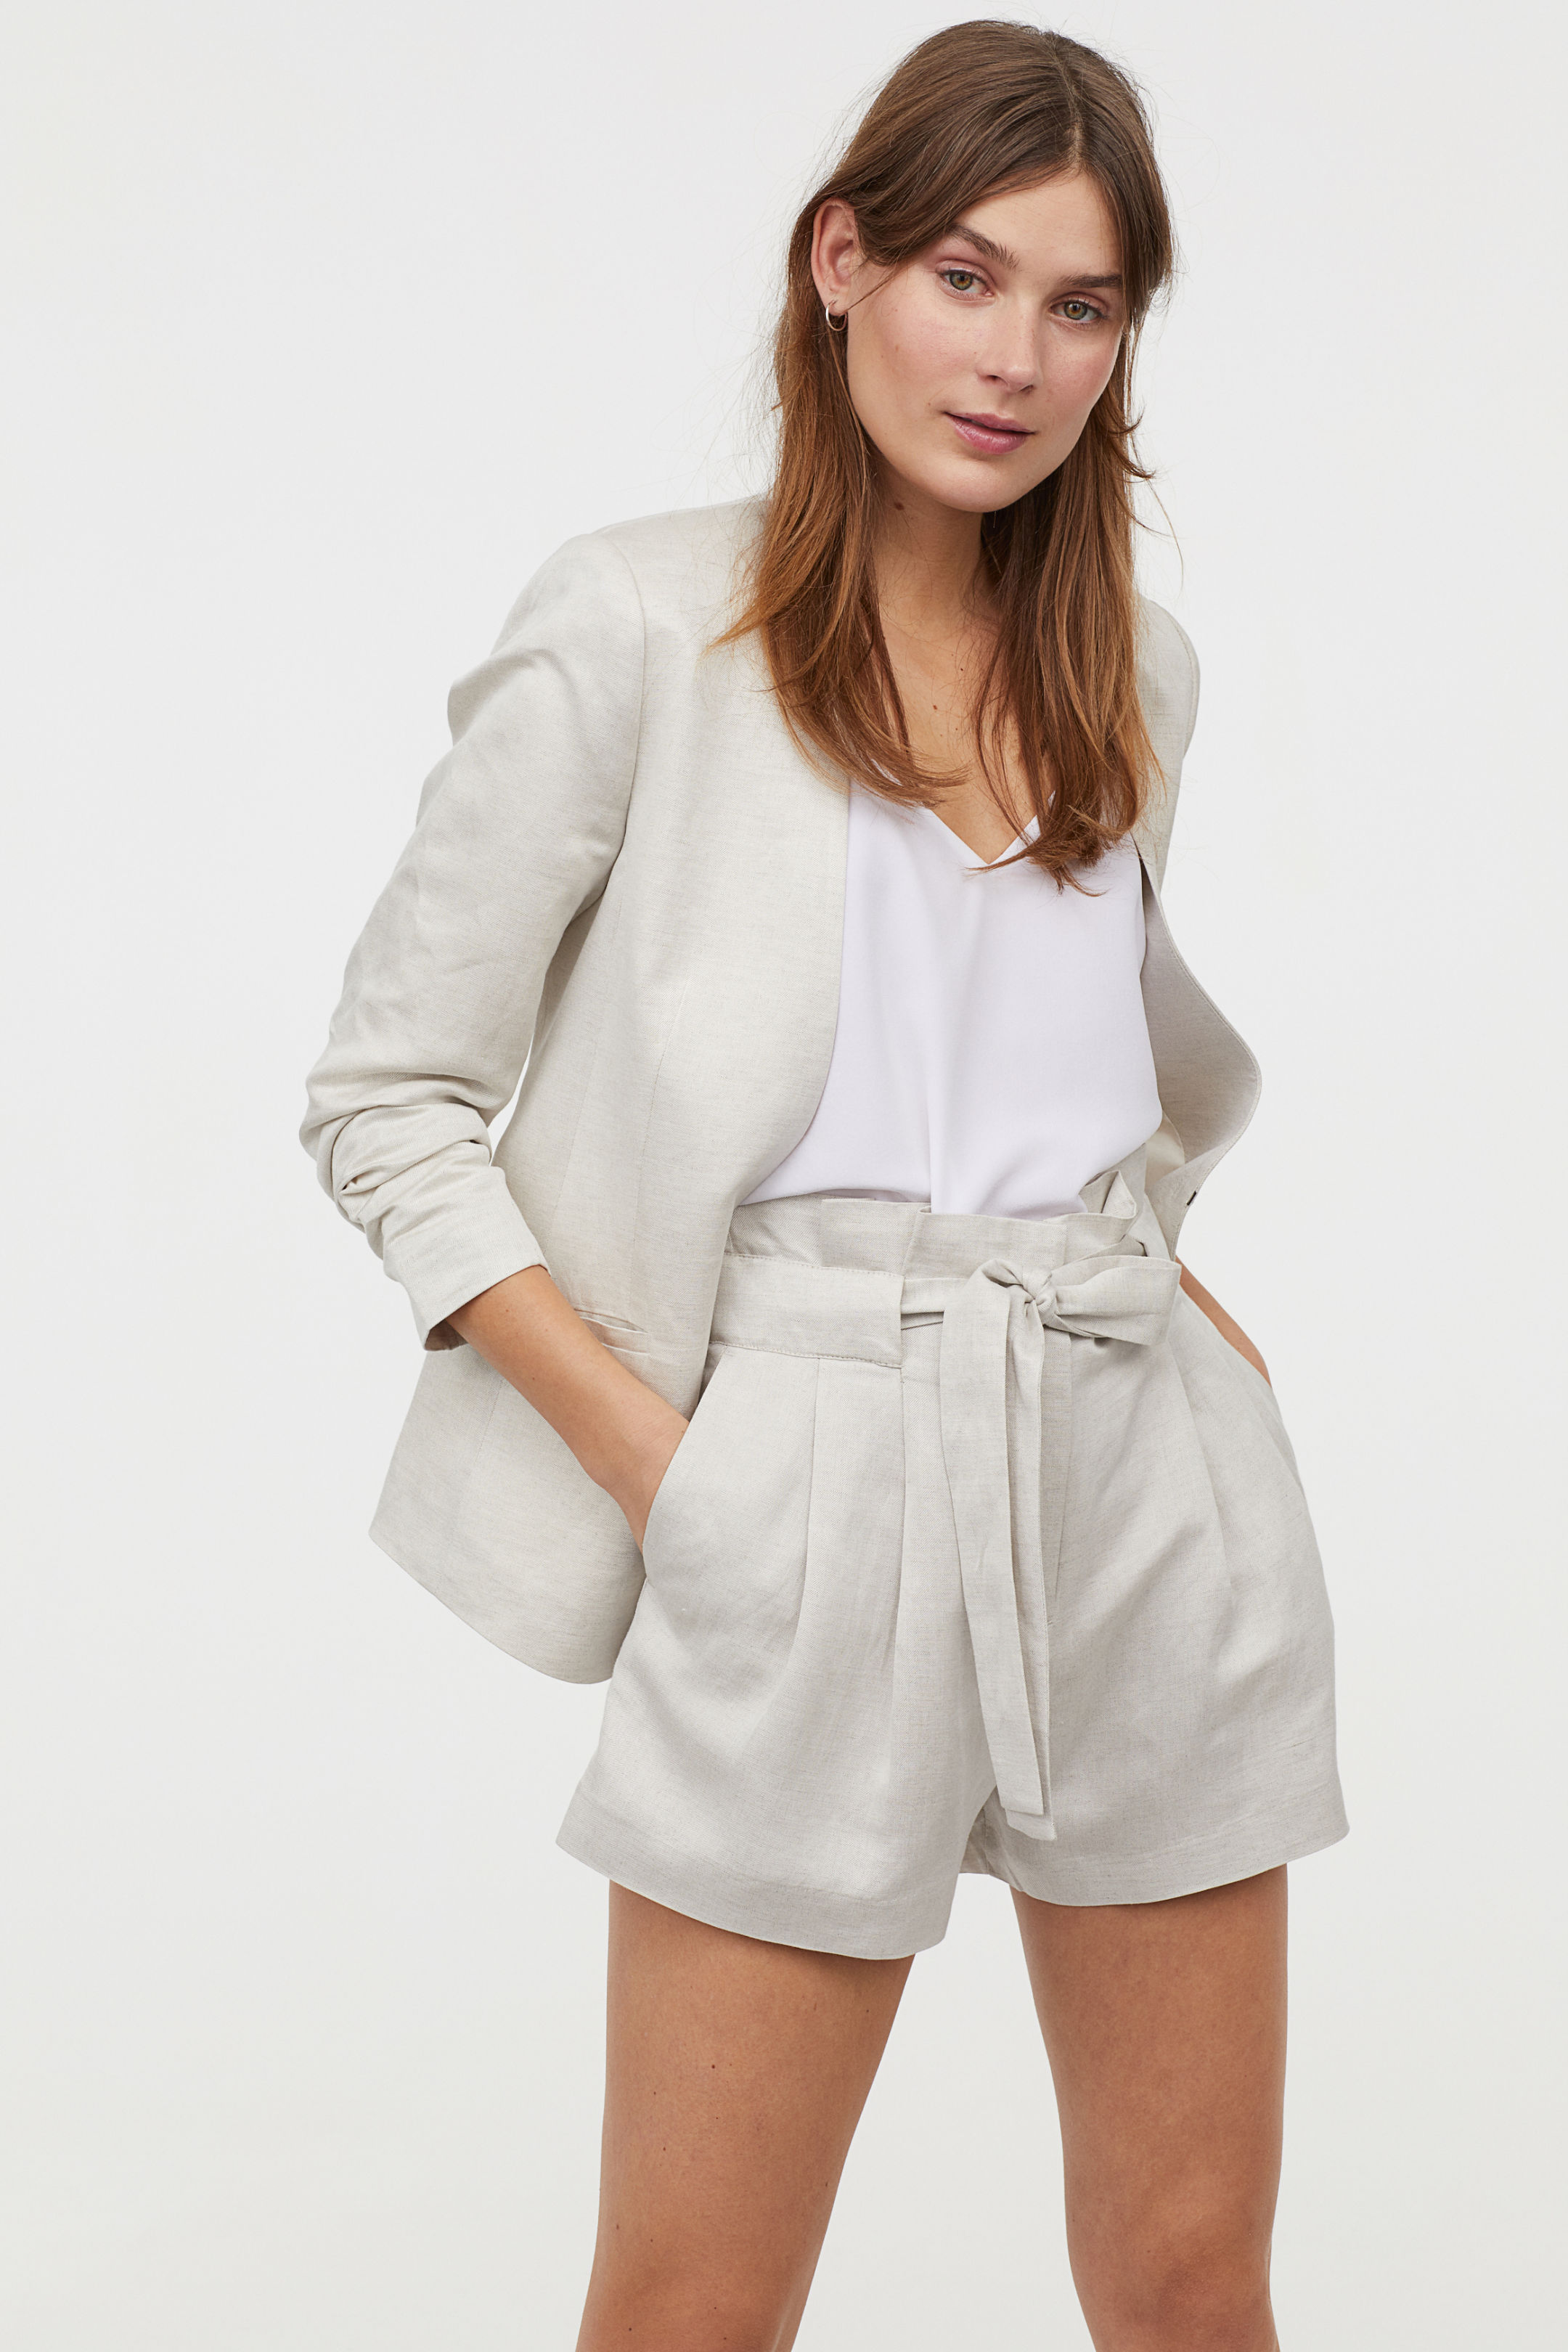 H&M Linen Suit Separates     $84.98